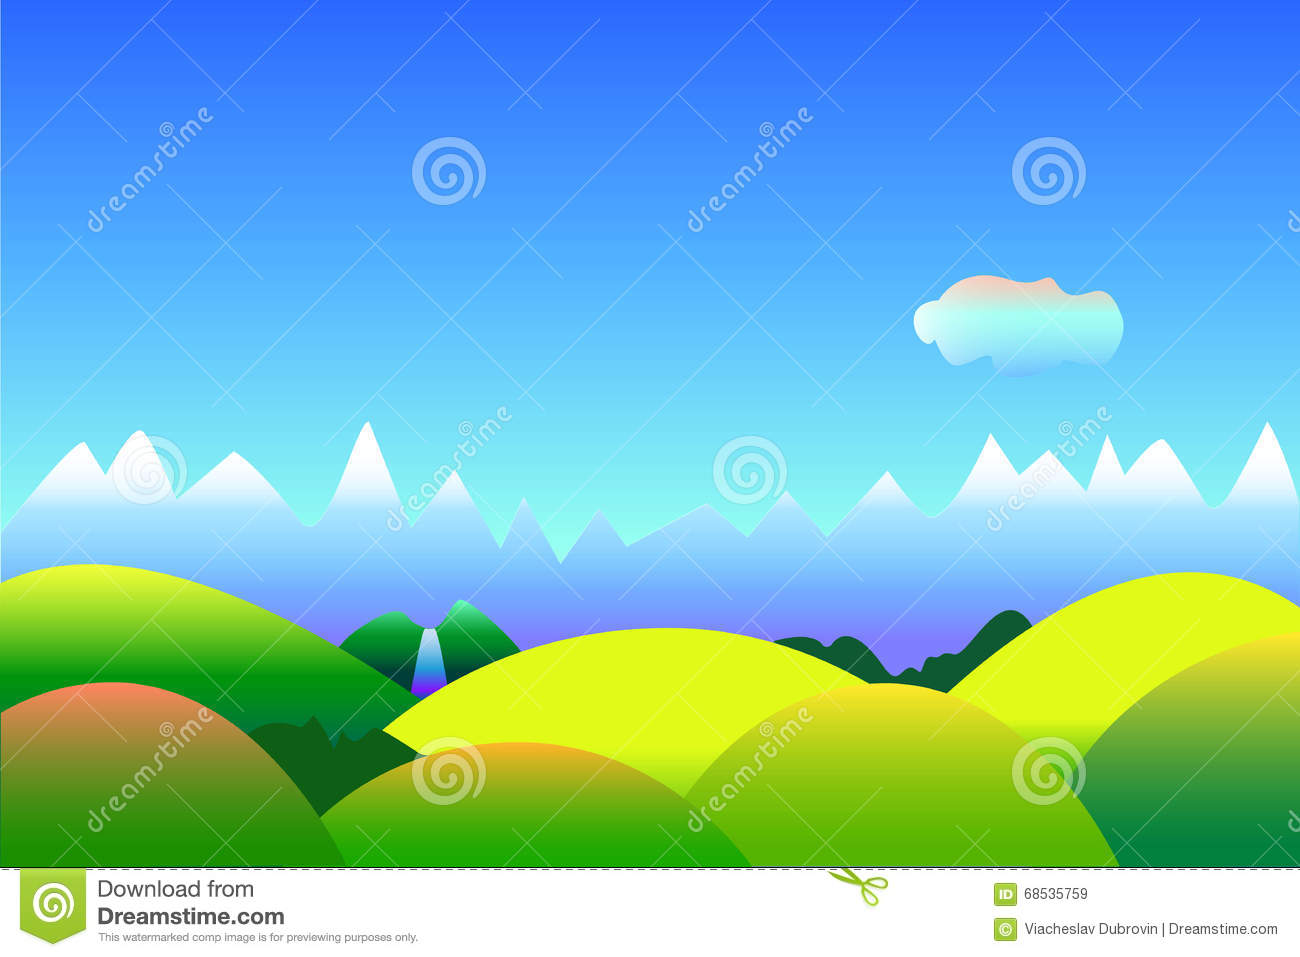 Top Wallpaper Mountain Simple - simple-optimistic-landscape-background-space-text-illustration-blue-green-mountains-hills-wallpapers-68535759  HD_707989.jpg